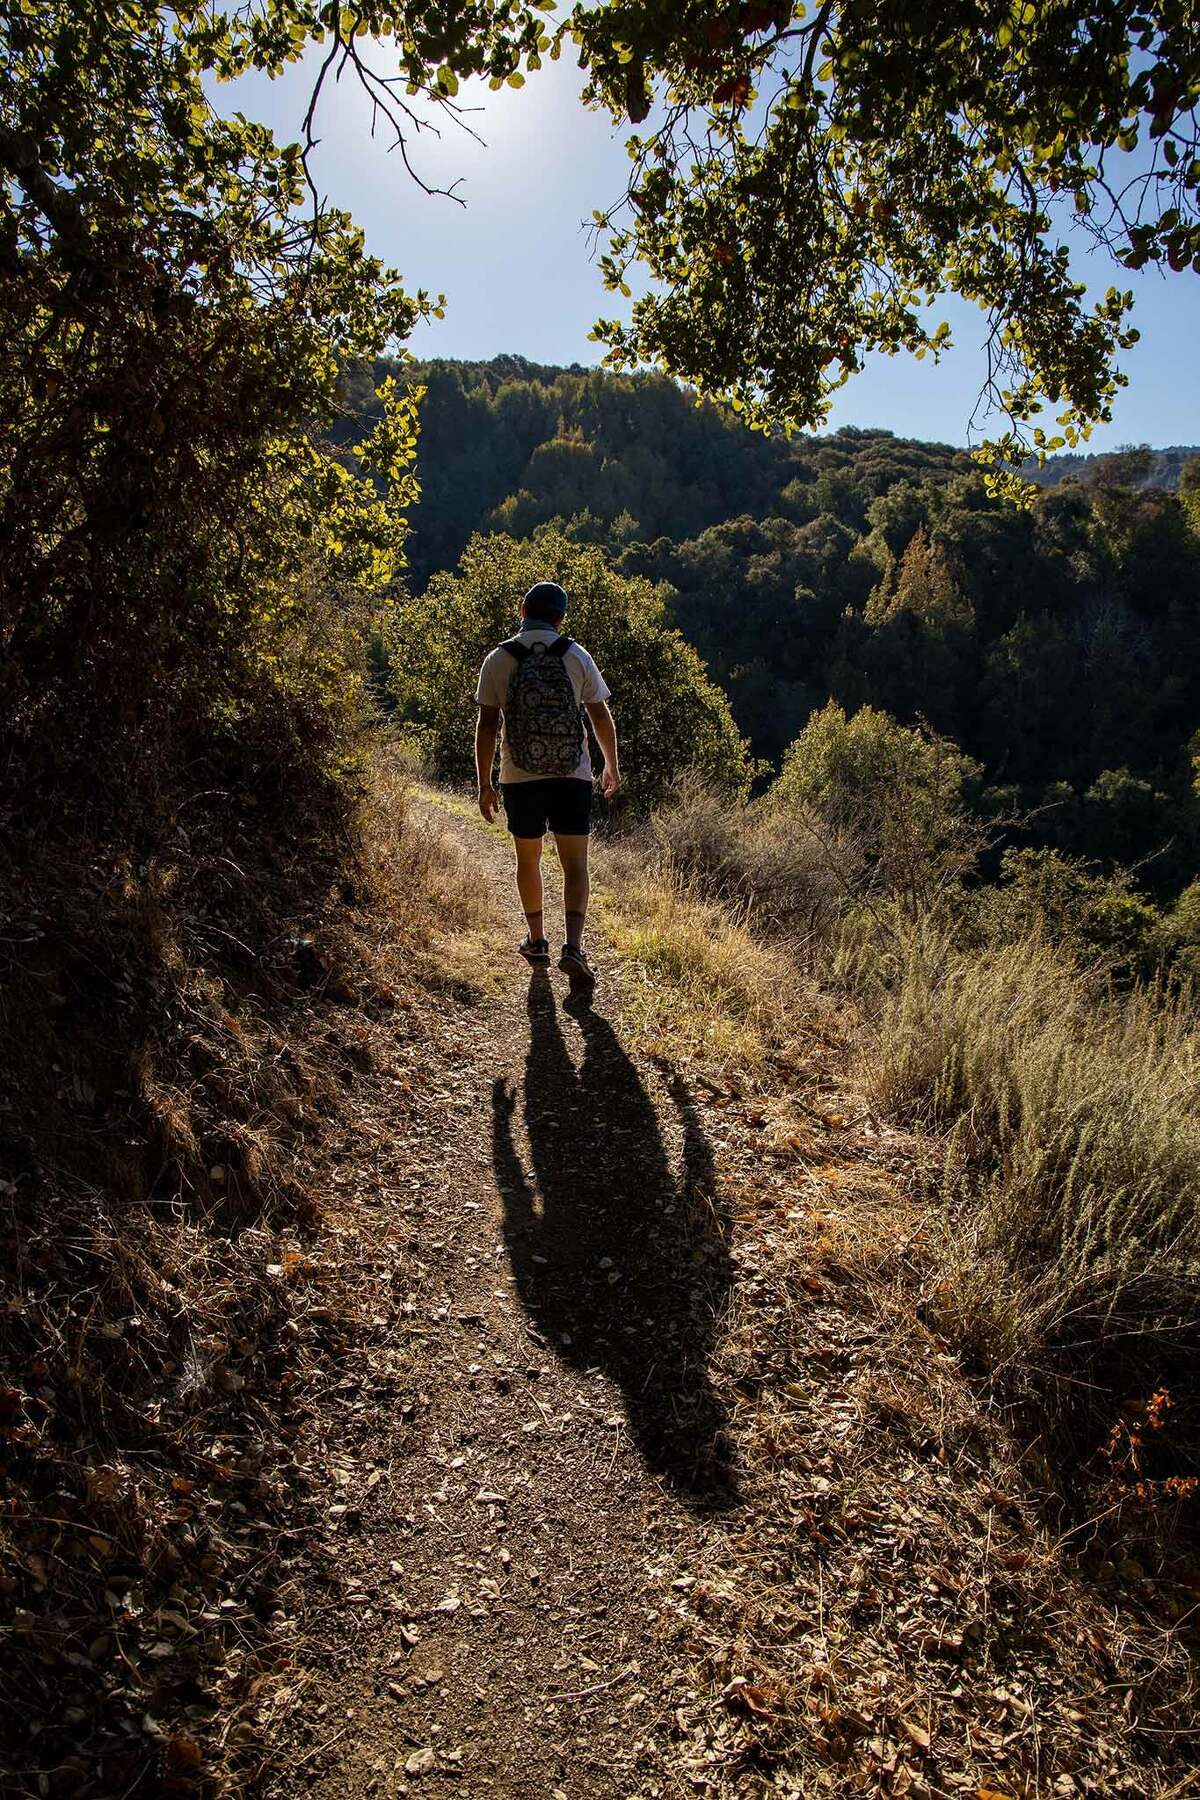 Palo Alto's Foothills Park is, without a shadow of doubt, a special park.